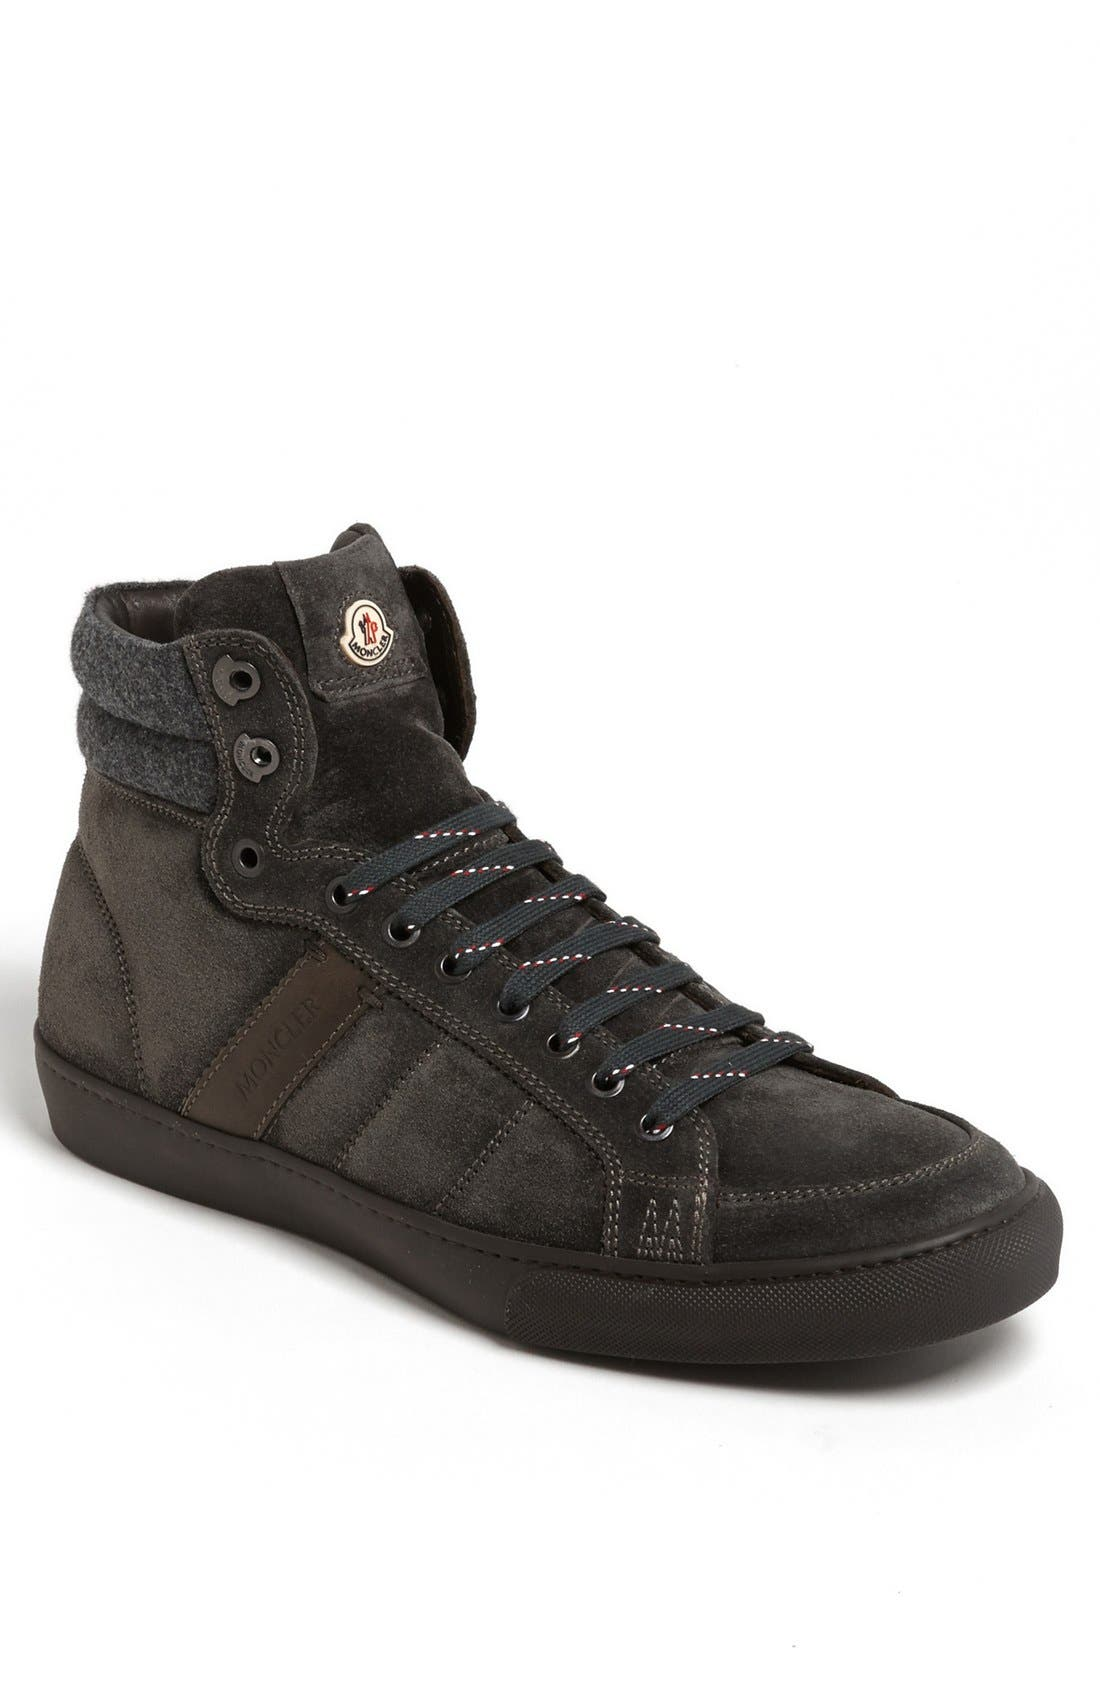 Alternate Image 1 Selected - Moncler 'Lyon' Suede Sneaker